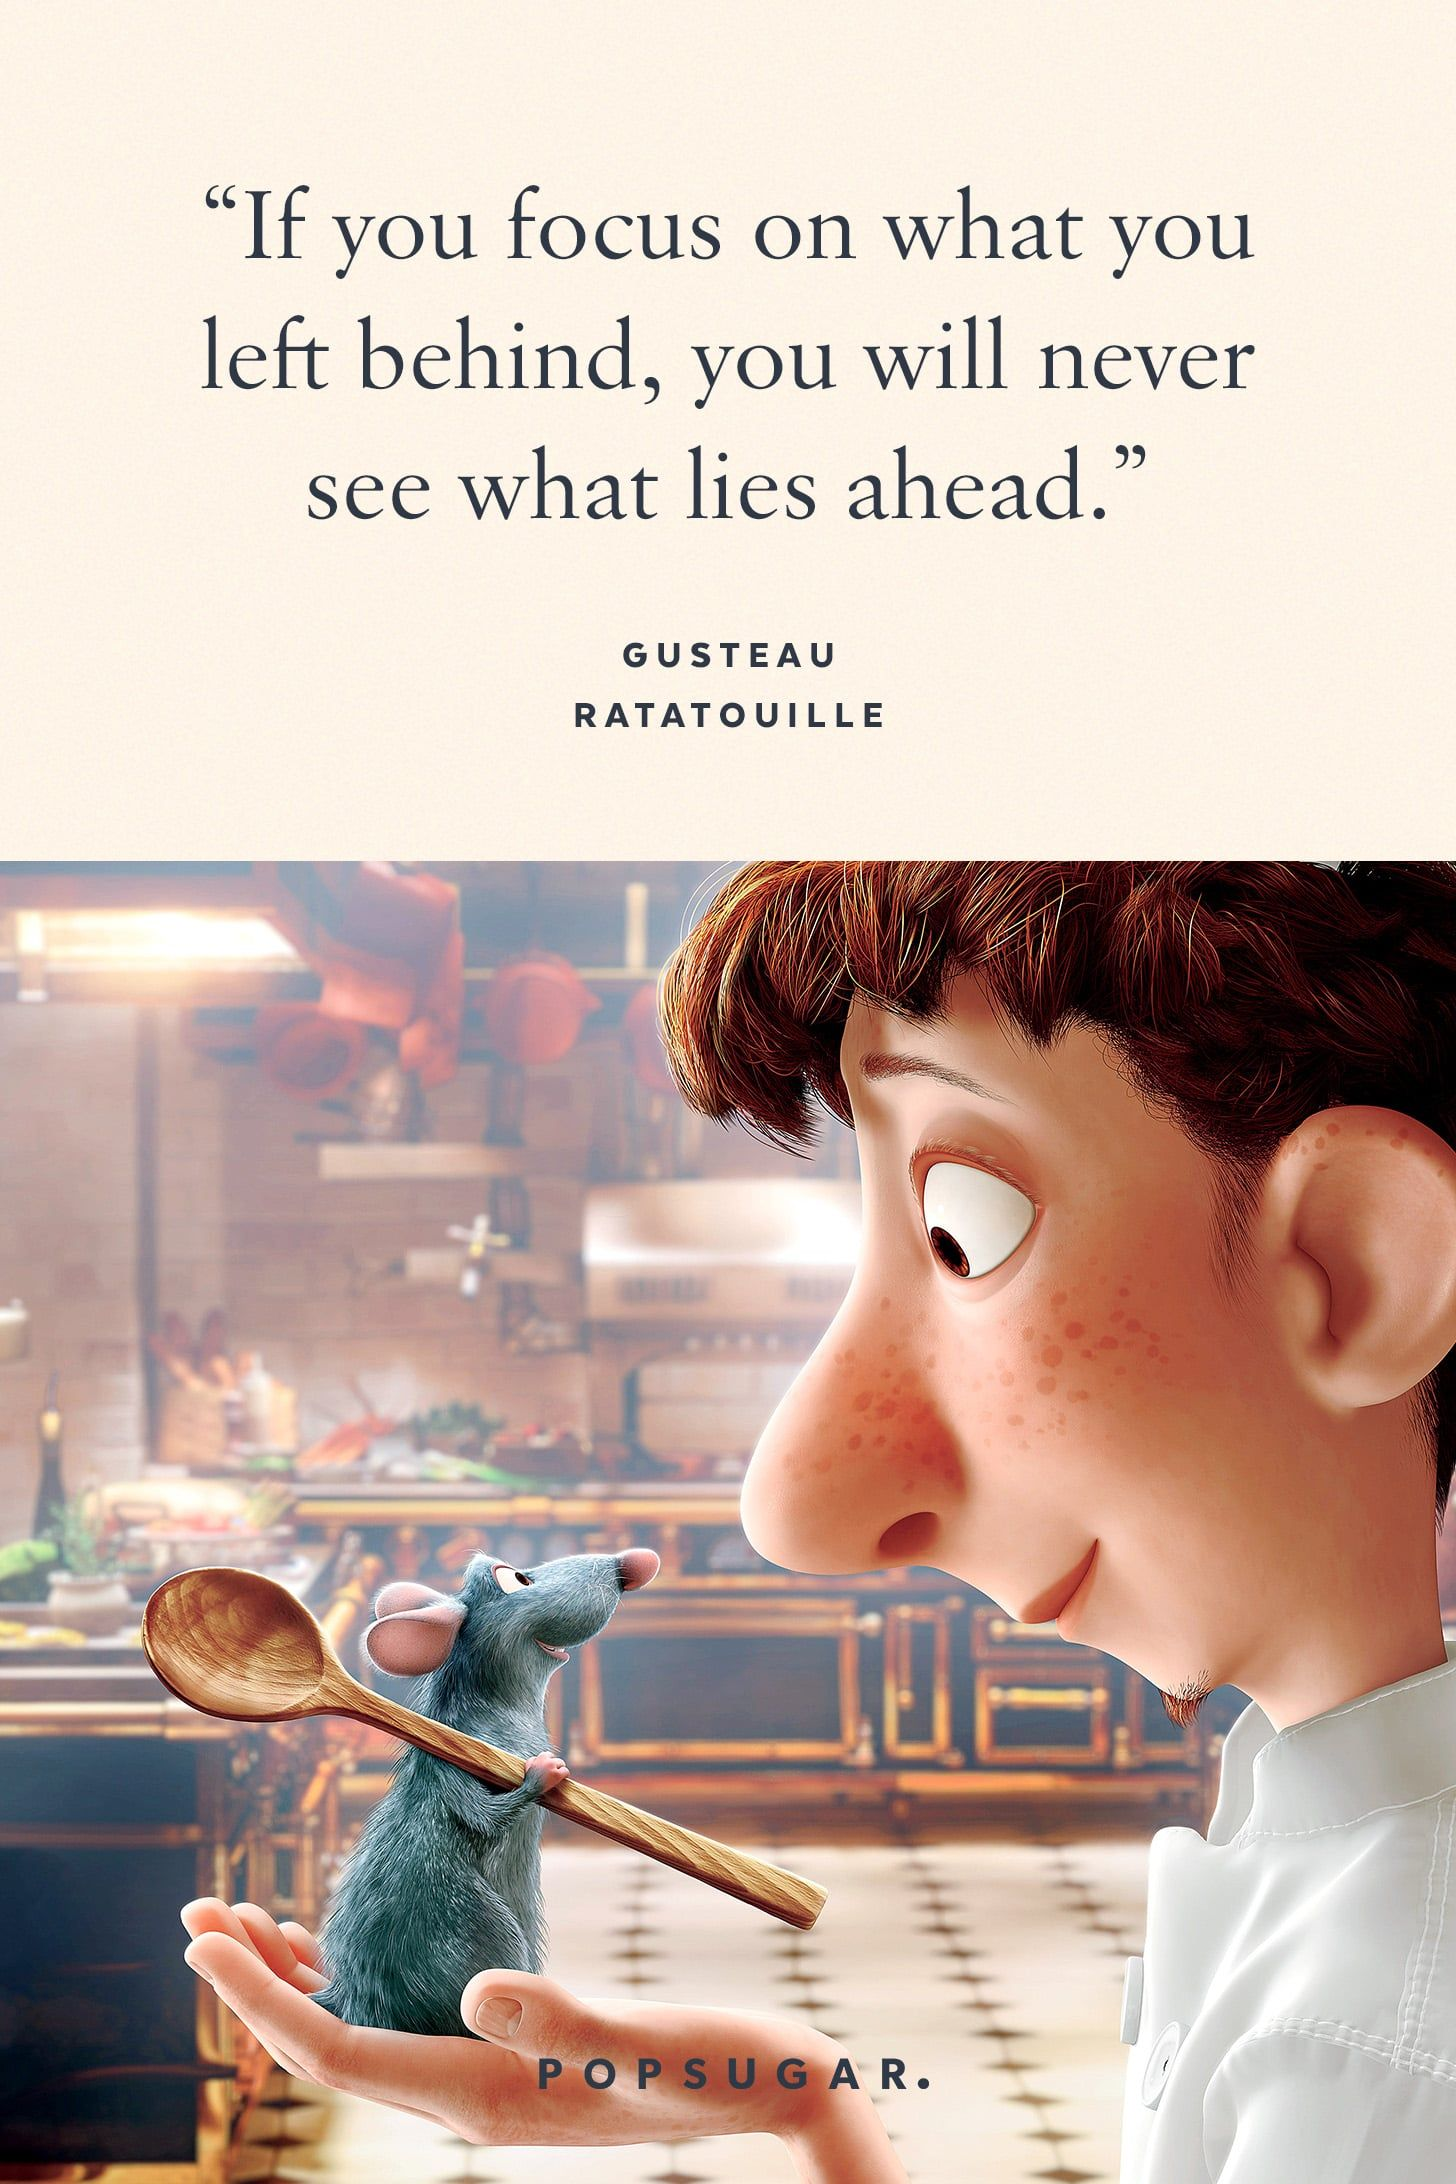 44 Emotional And Beautiful Disney Quotes That Are Guaranteed To Make You Cry Life Quotes Disney Cute Disney Quotes Beautiful Disney Quotes